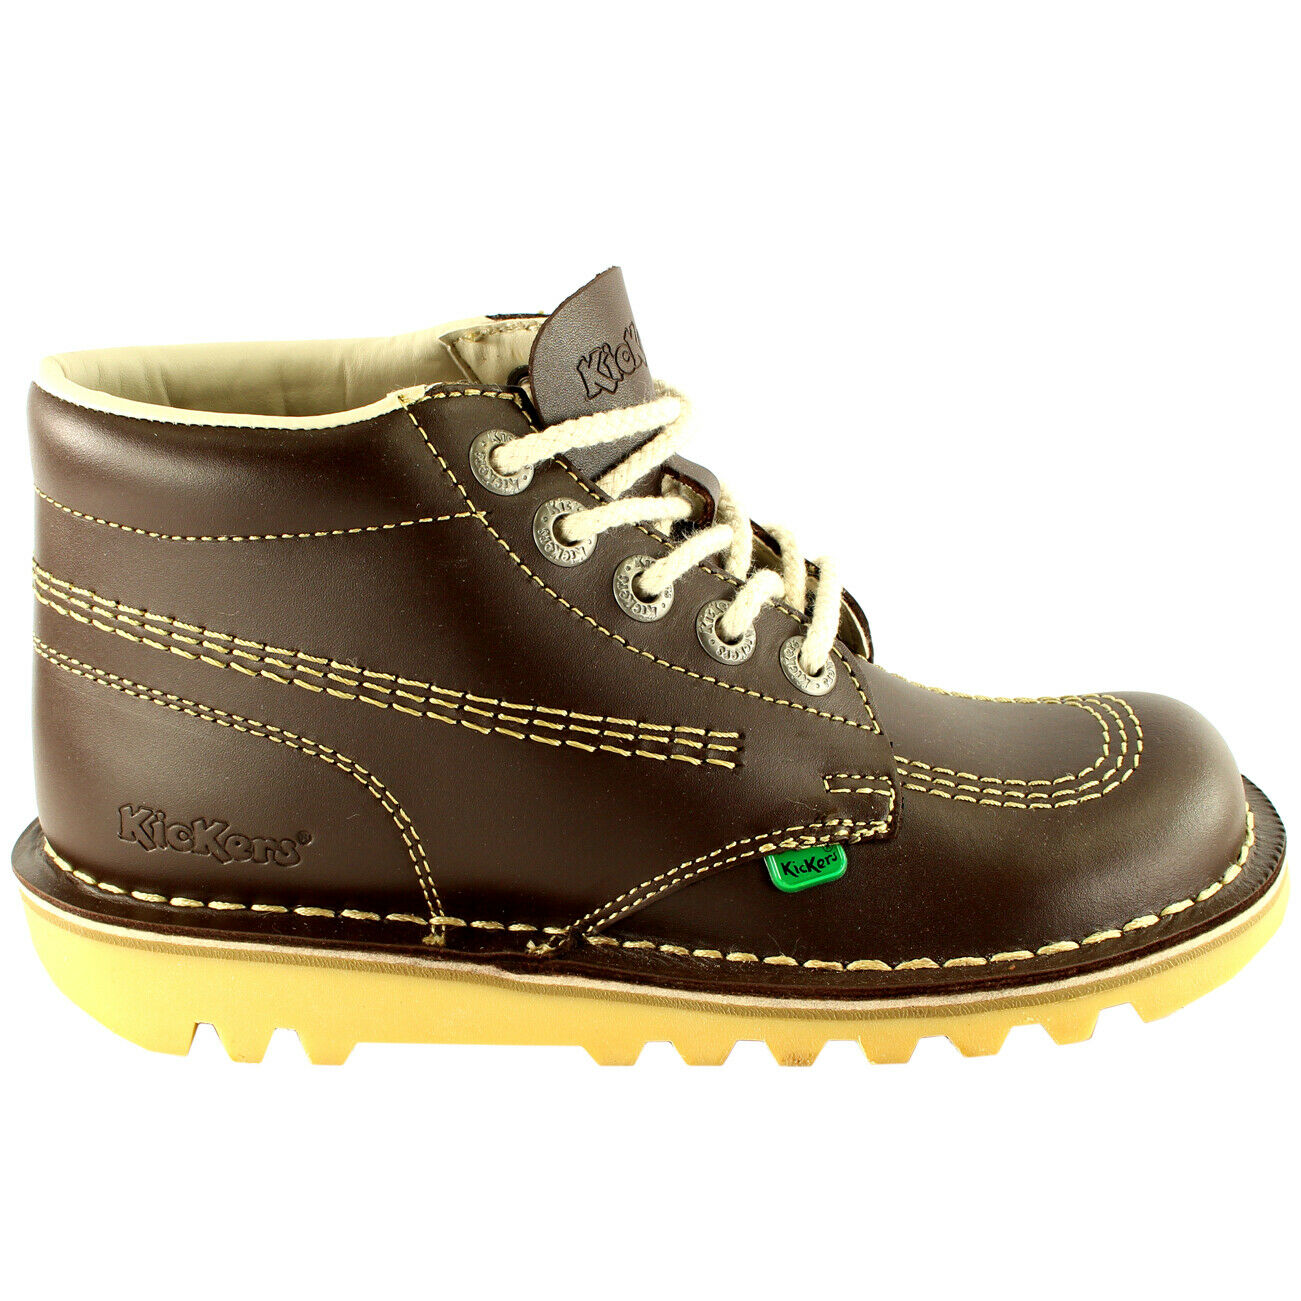 Kickers Womens Classic Boots